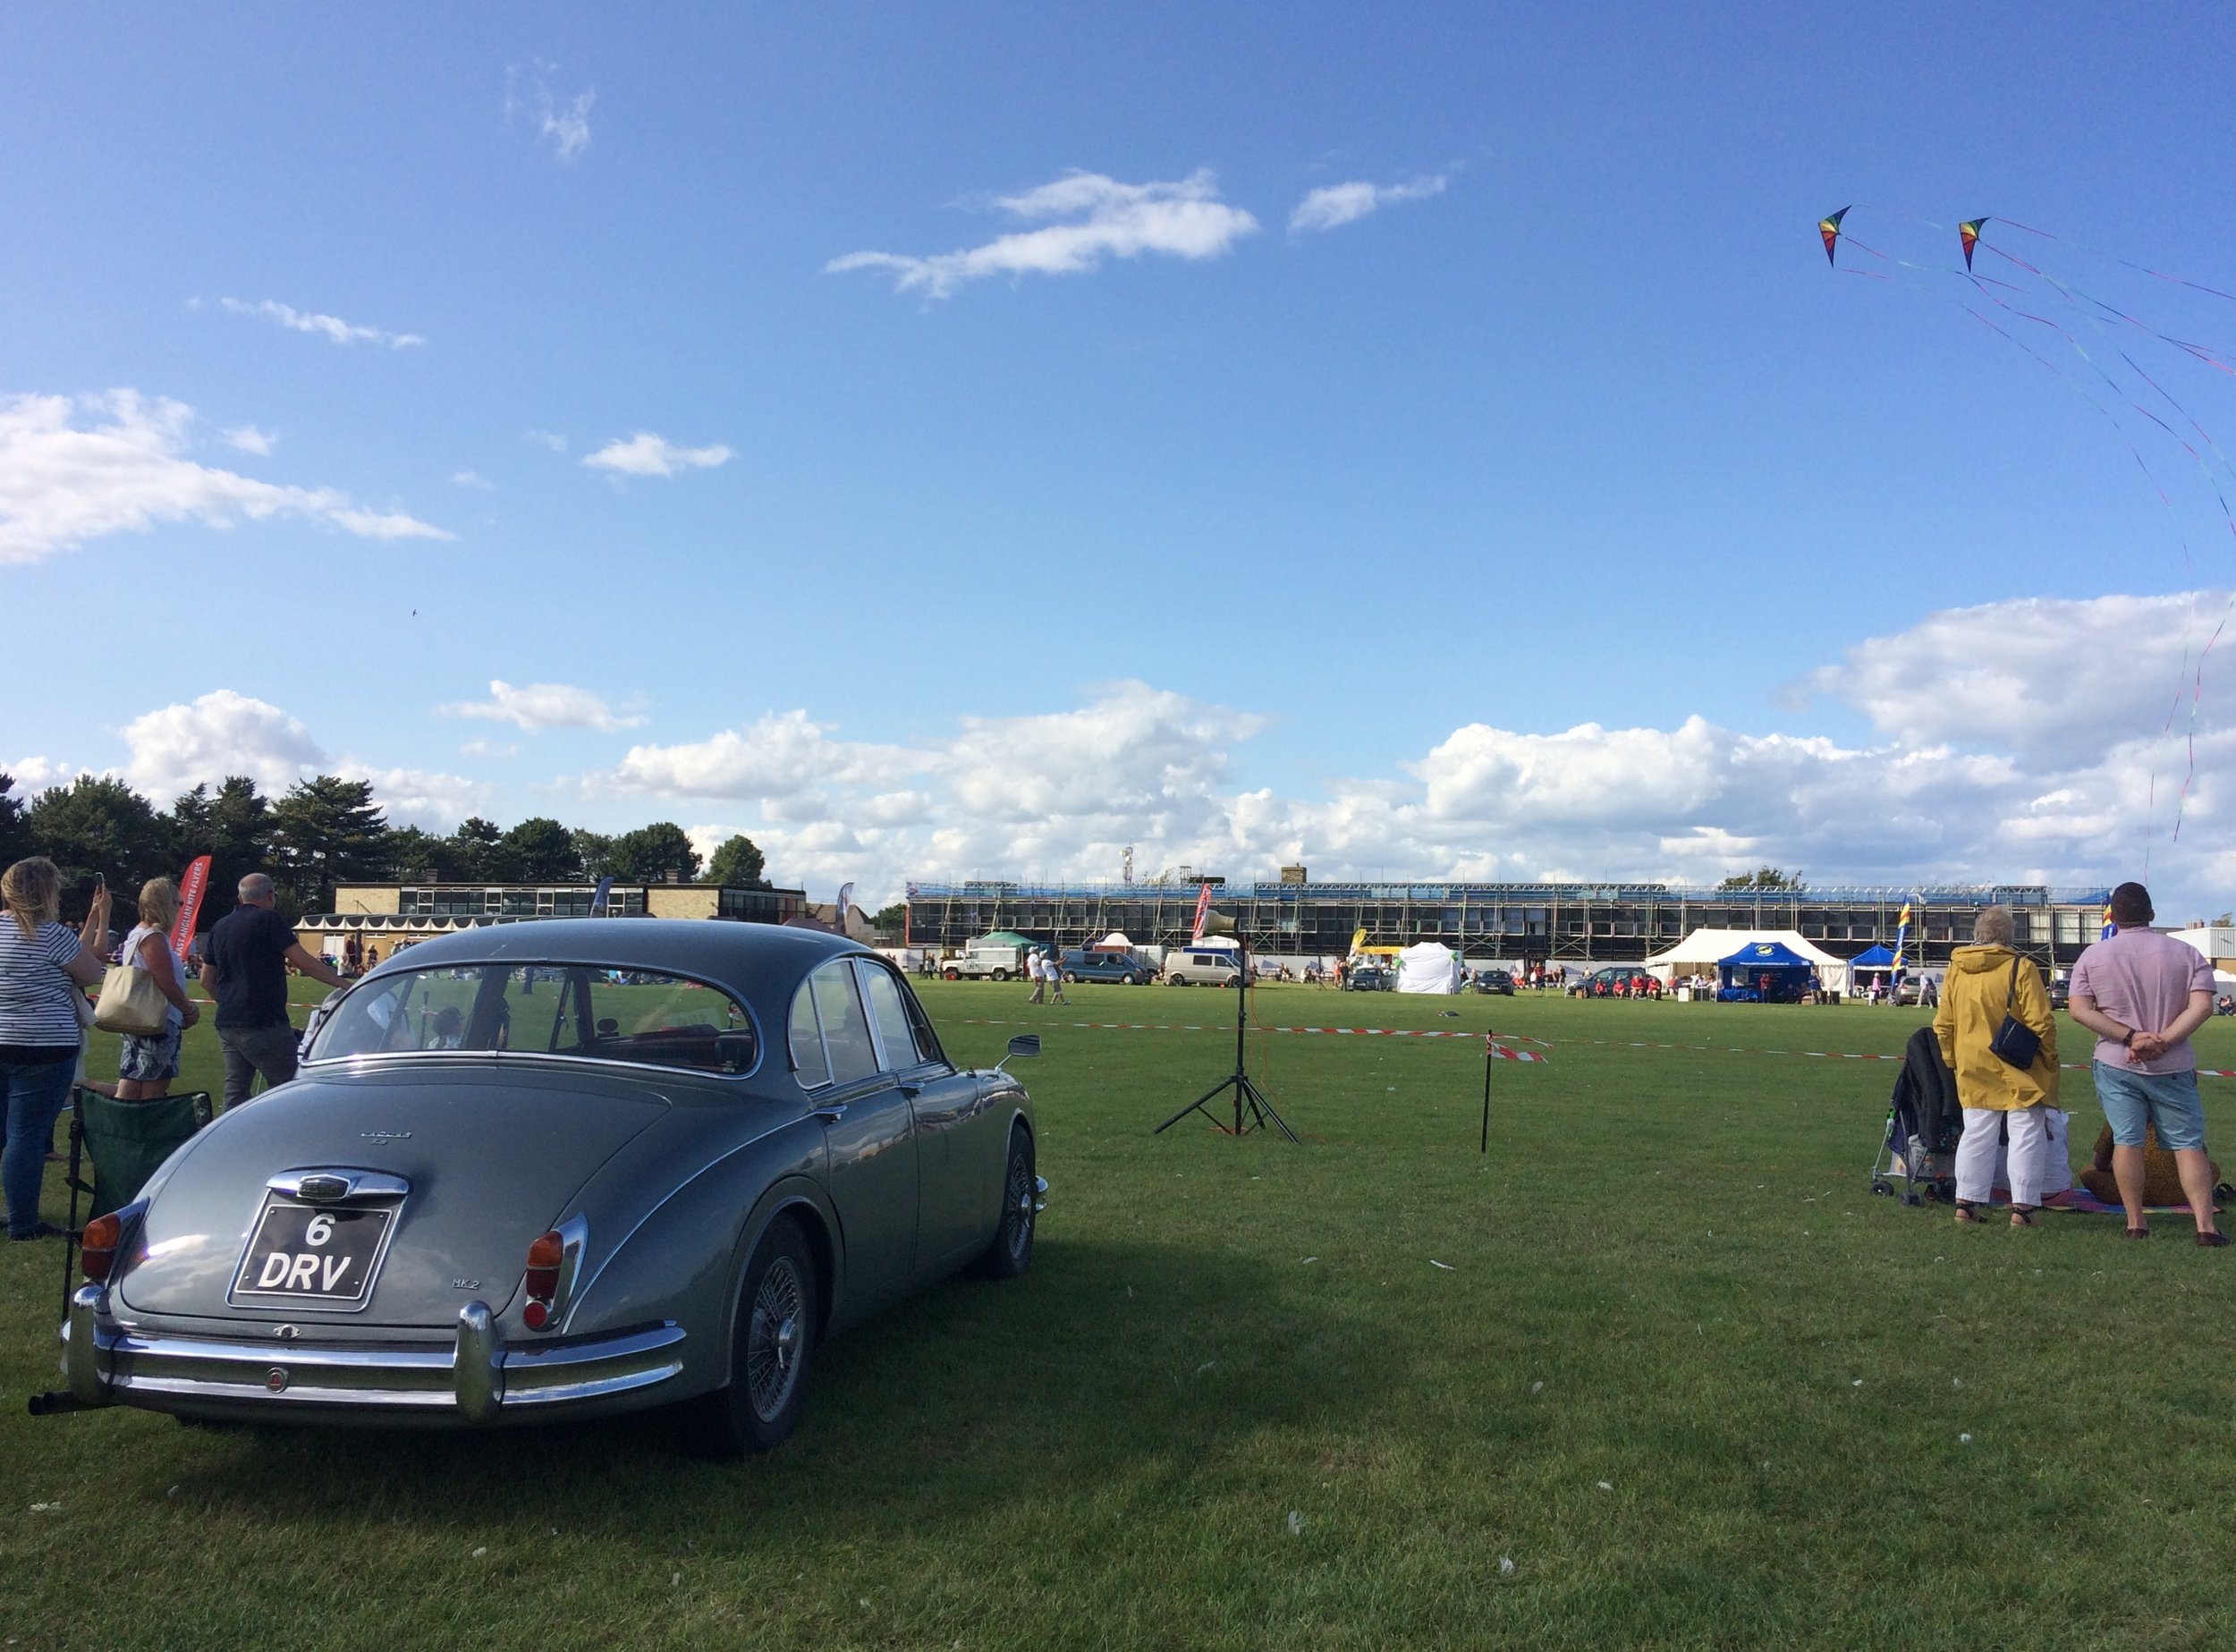 Kites and classics - a pleasant way to spend a sunny August afternoon..